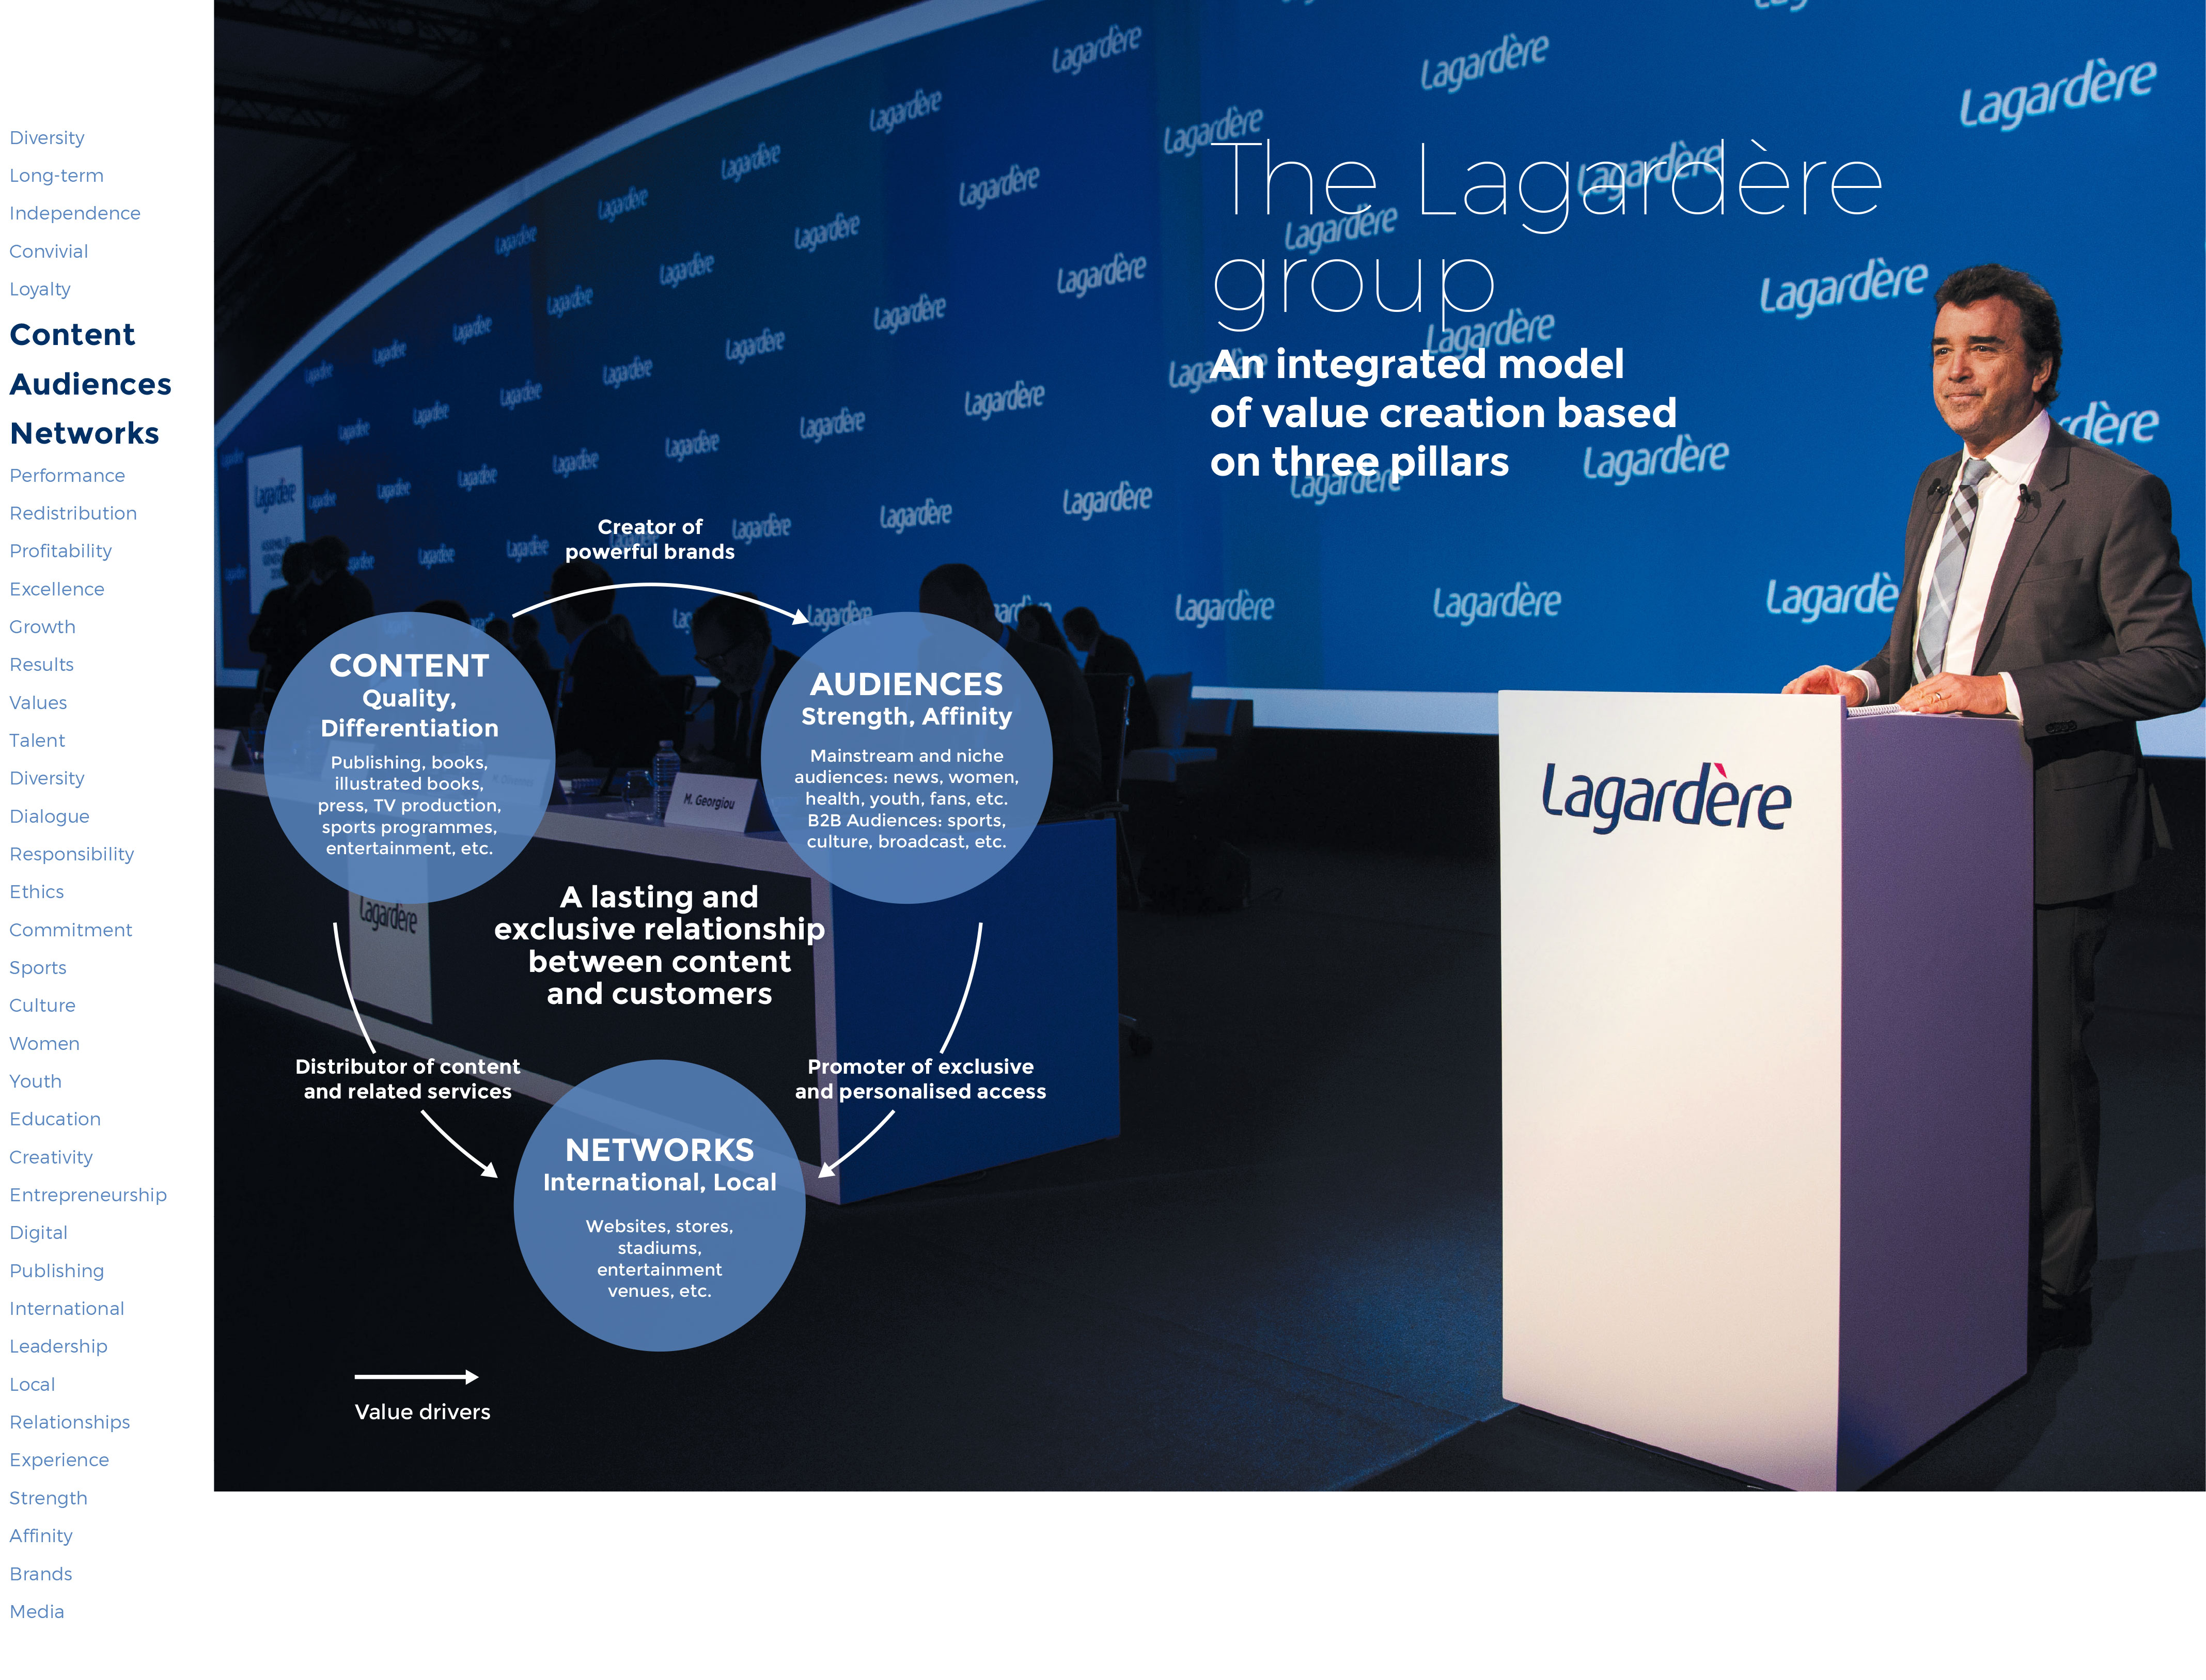 The Lagardère group: An integrated model of value creation based on three pillars